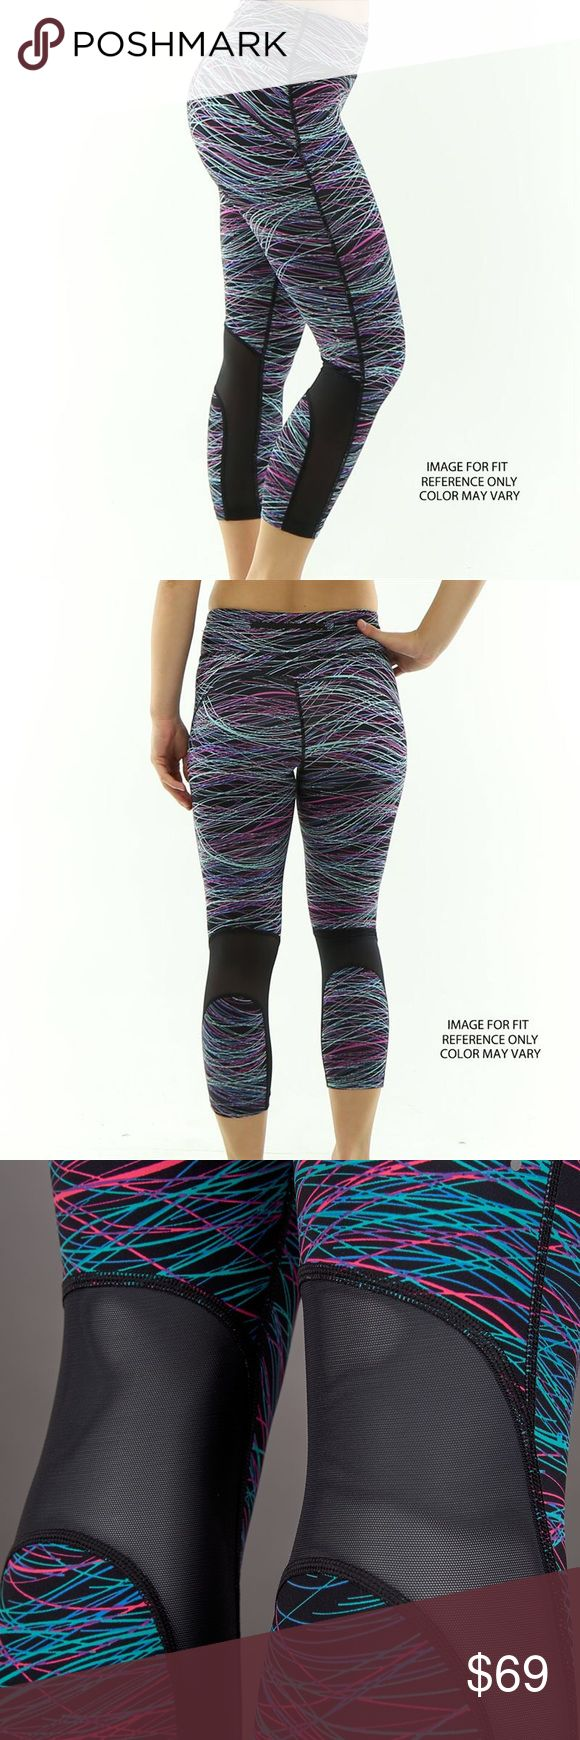 Nike Epic Lux Running Cropped Pants w/Mesh Panels NWT Nike running tights with mesh paneling and lightweight fabric - ideal for running, lifting or yoga. Nike Pants Leggings